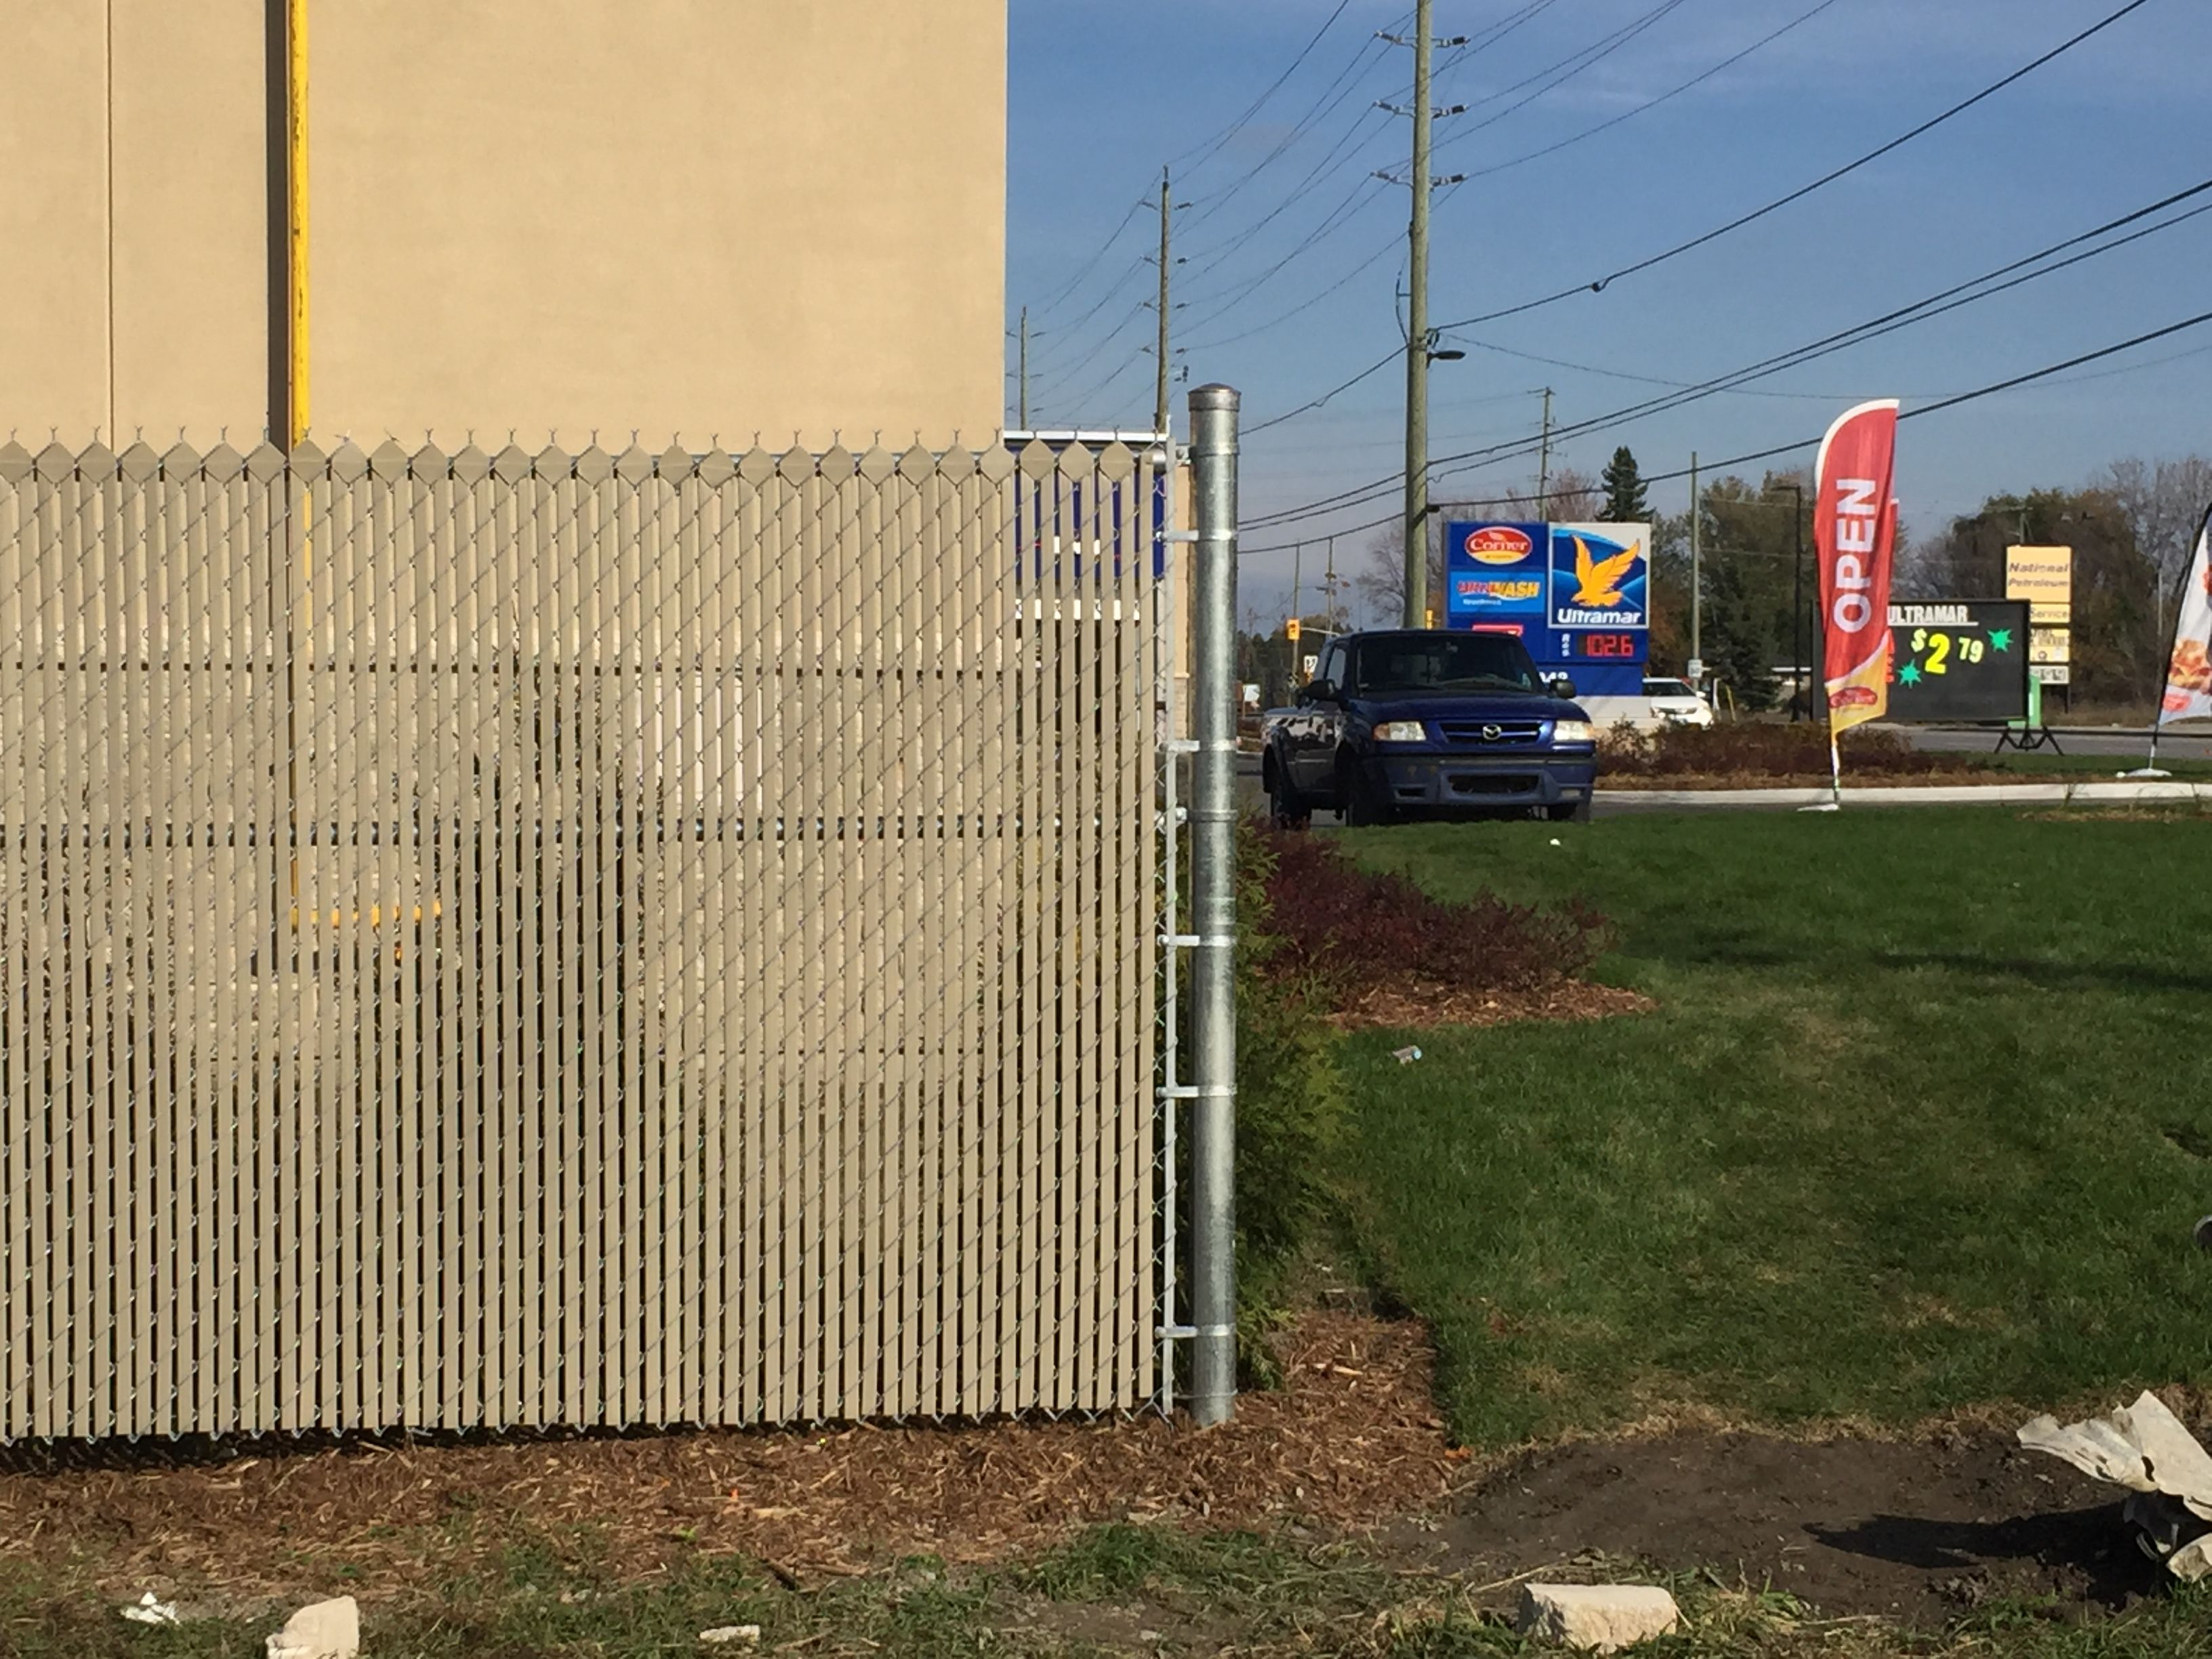 Privacy screen for chain link fence sears - Chain Link Fence With Privacy Fence Slats